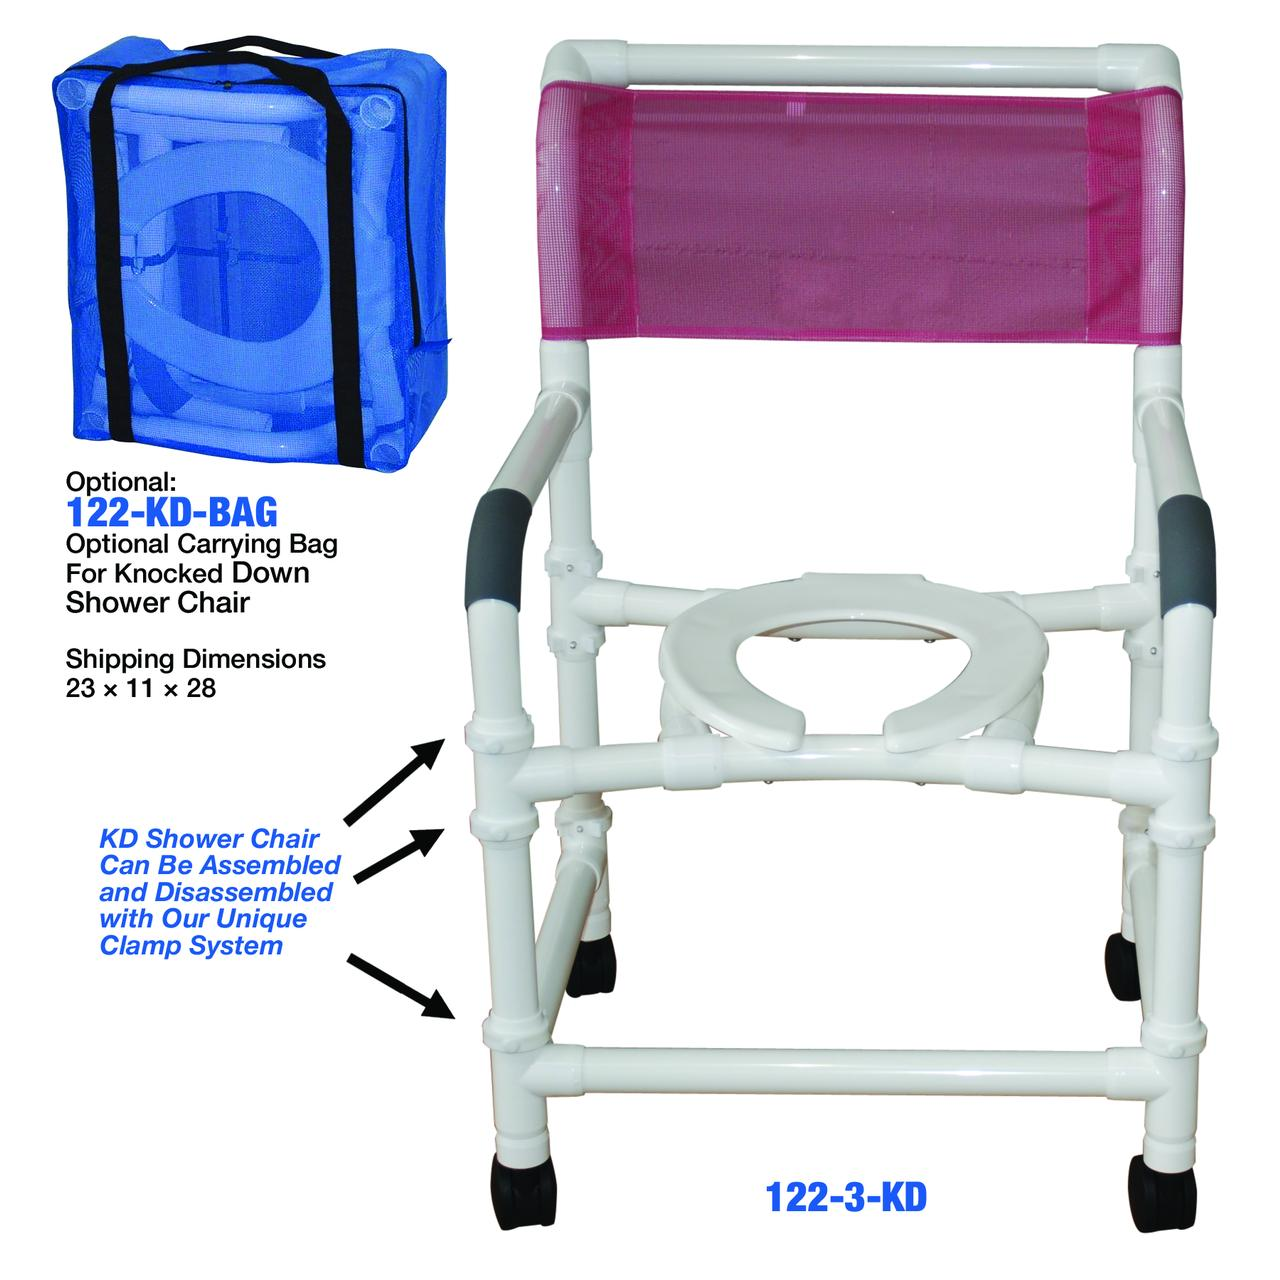 MJM International 122-3TW-KD Knockdown Wide Deluxe Shower Chair